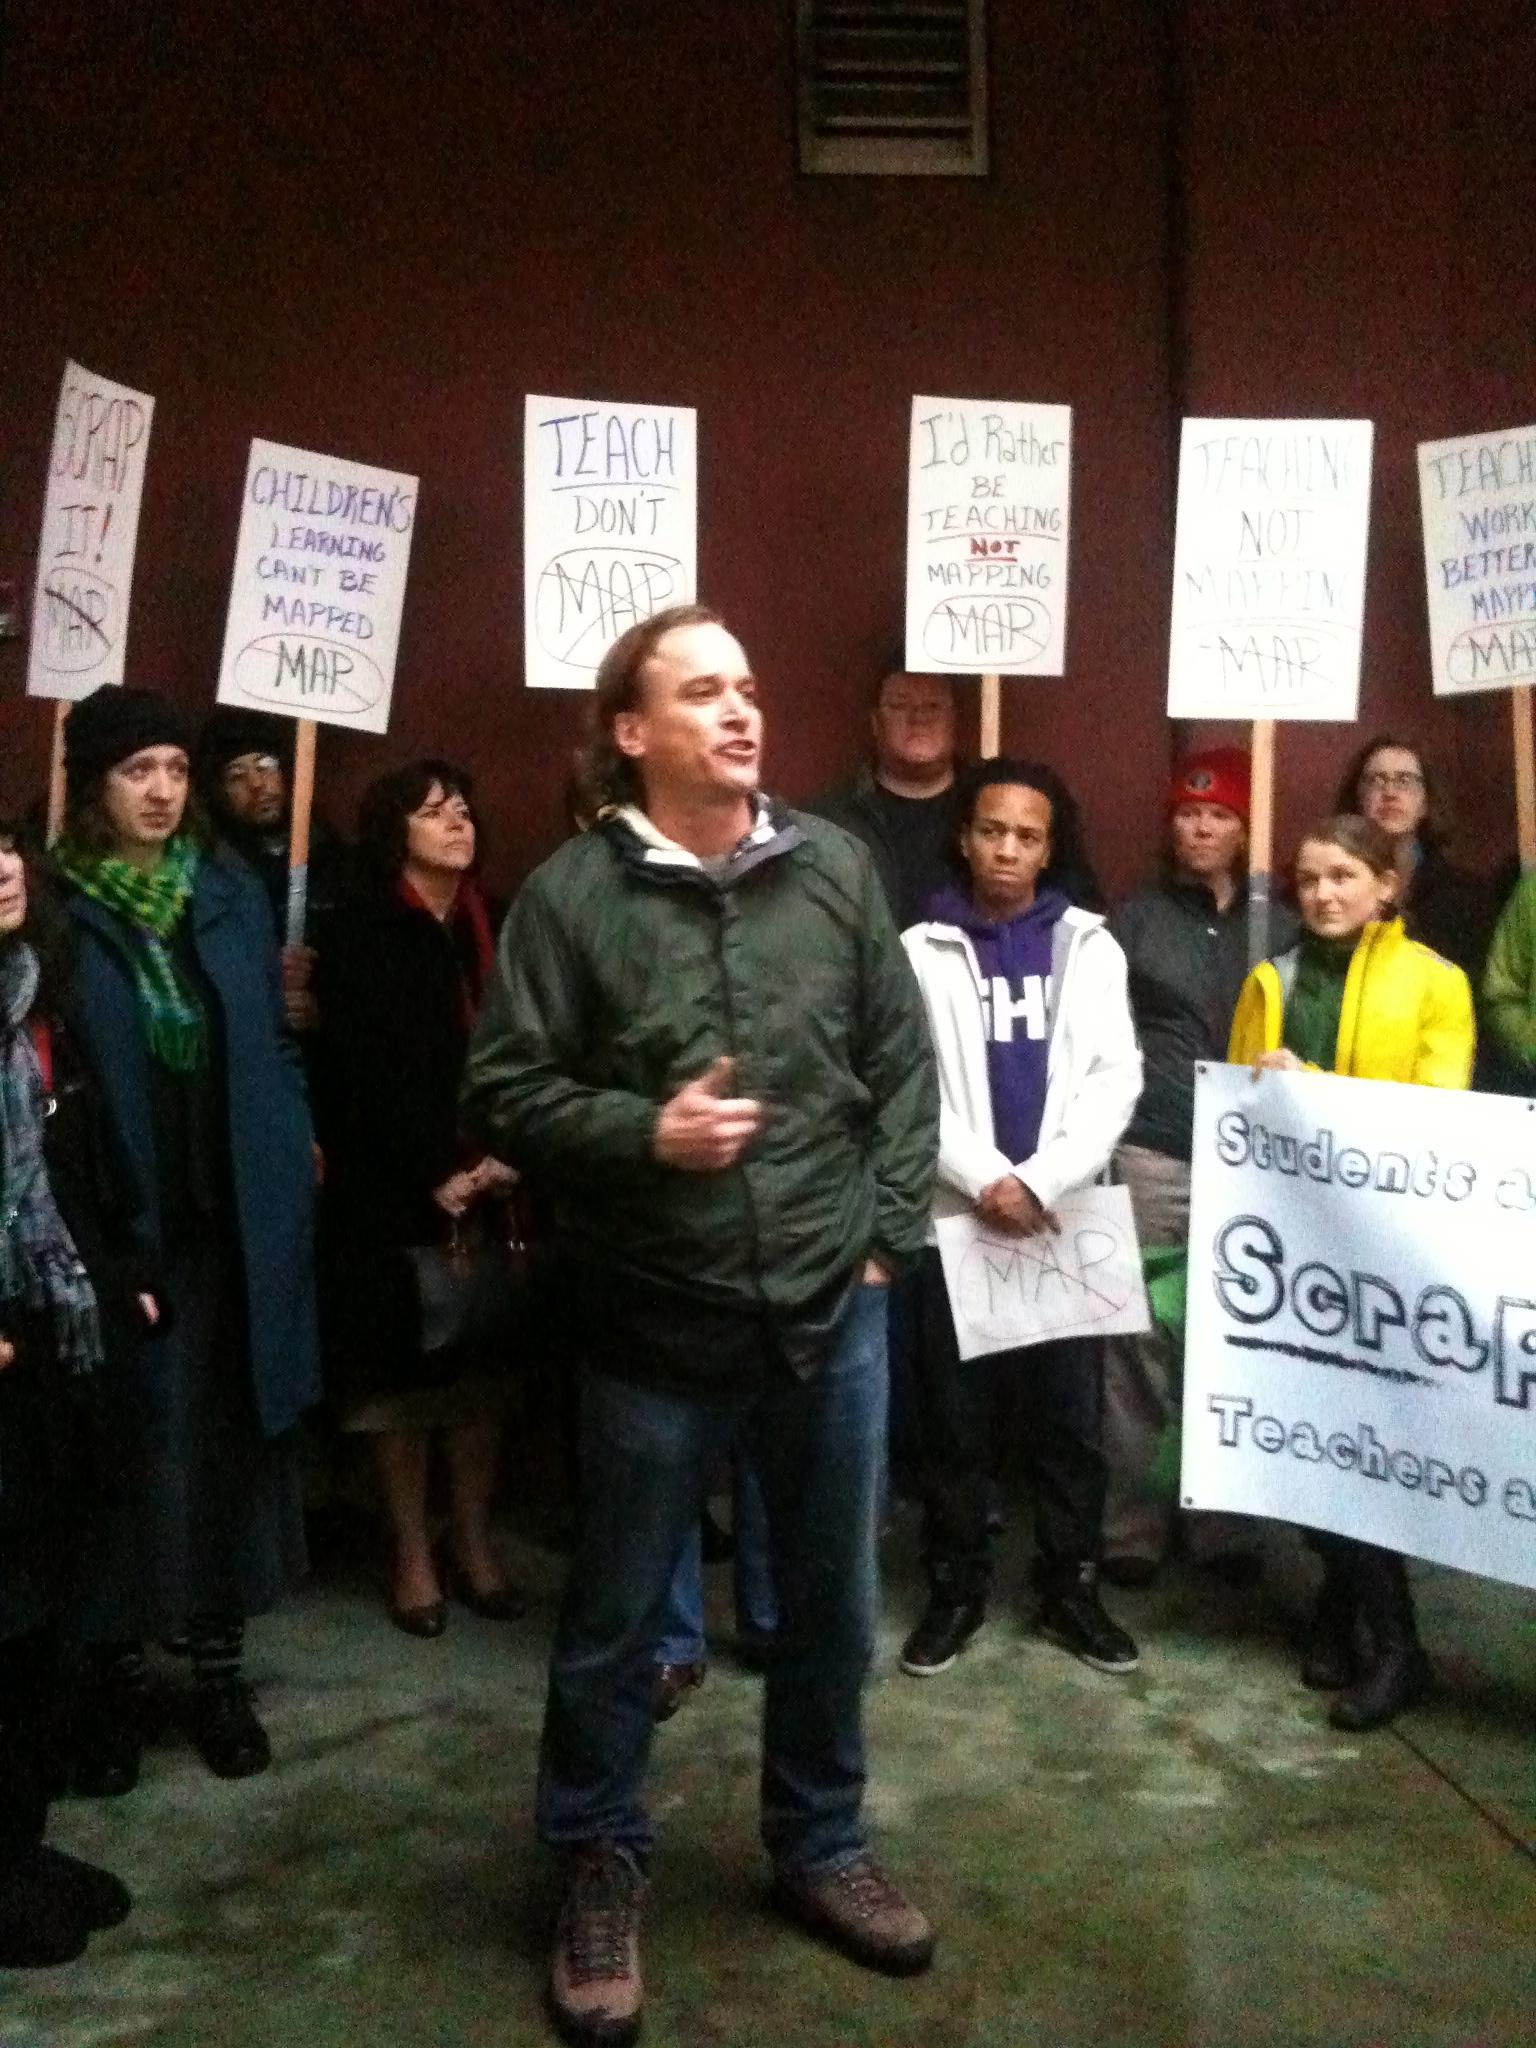 District Threatens Suspensions Seattle Teachers Continue Test